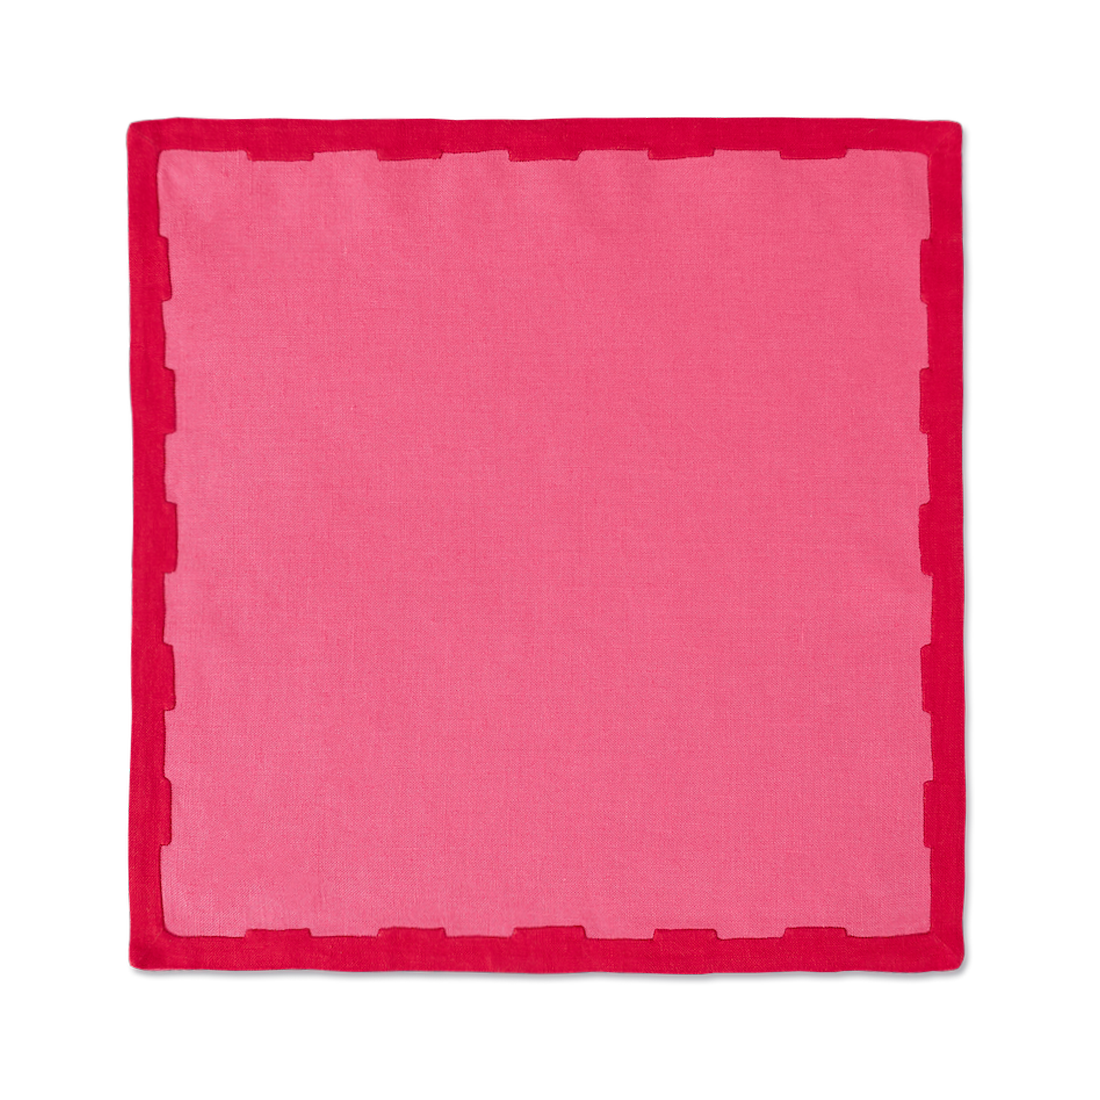 Hanover Placemats, Pink and Red, Set of 2 - BACK IN STOCK